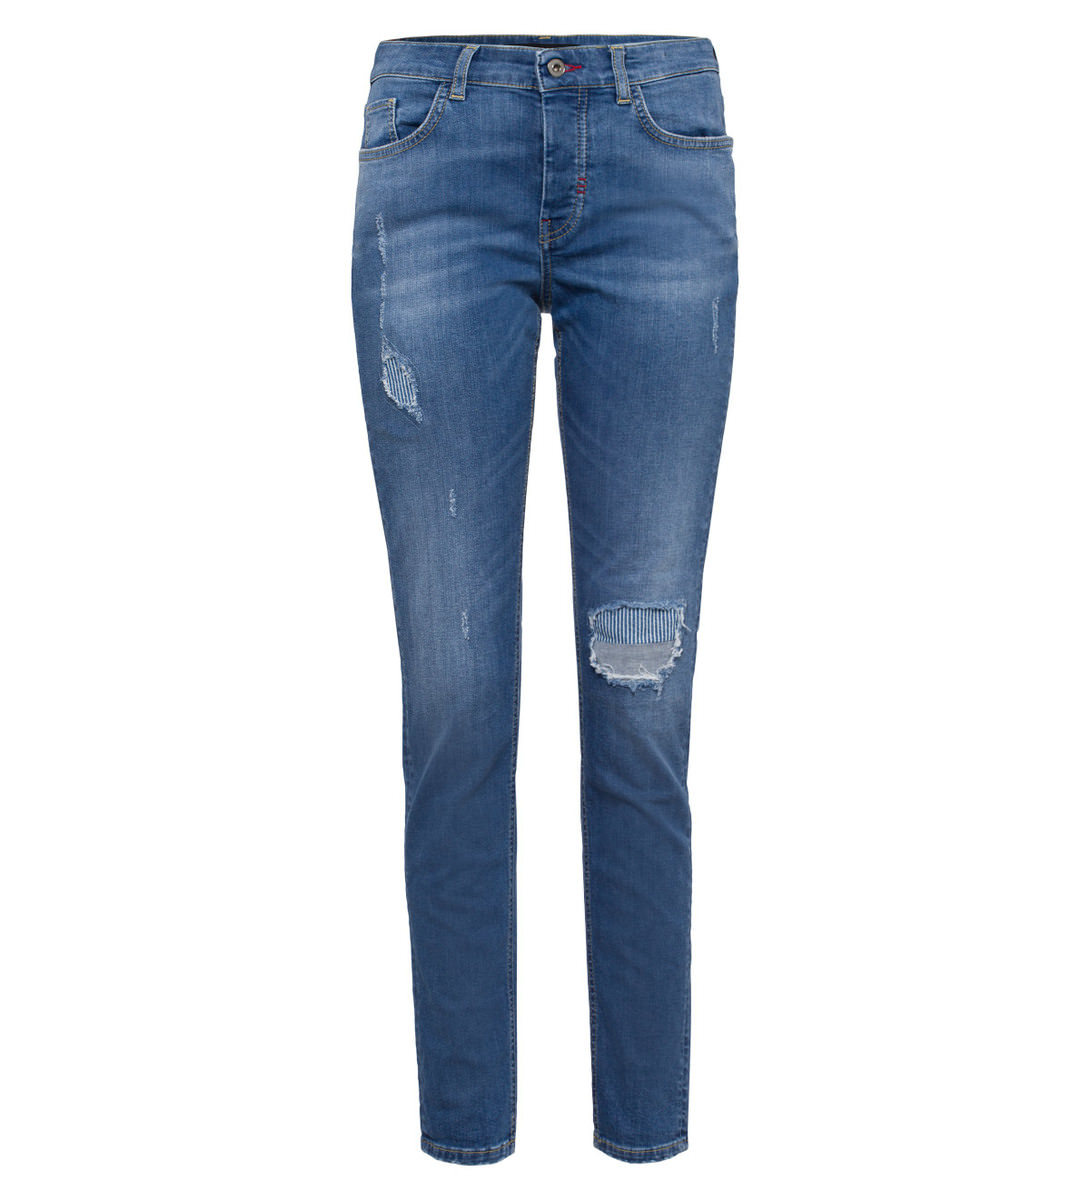 Jeans im Used-Look 30 Inch in mid blue denim striped destroy